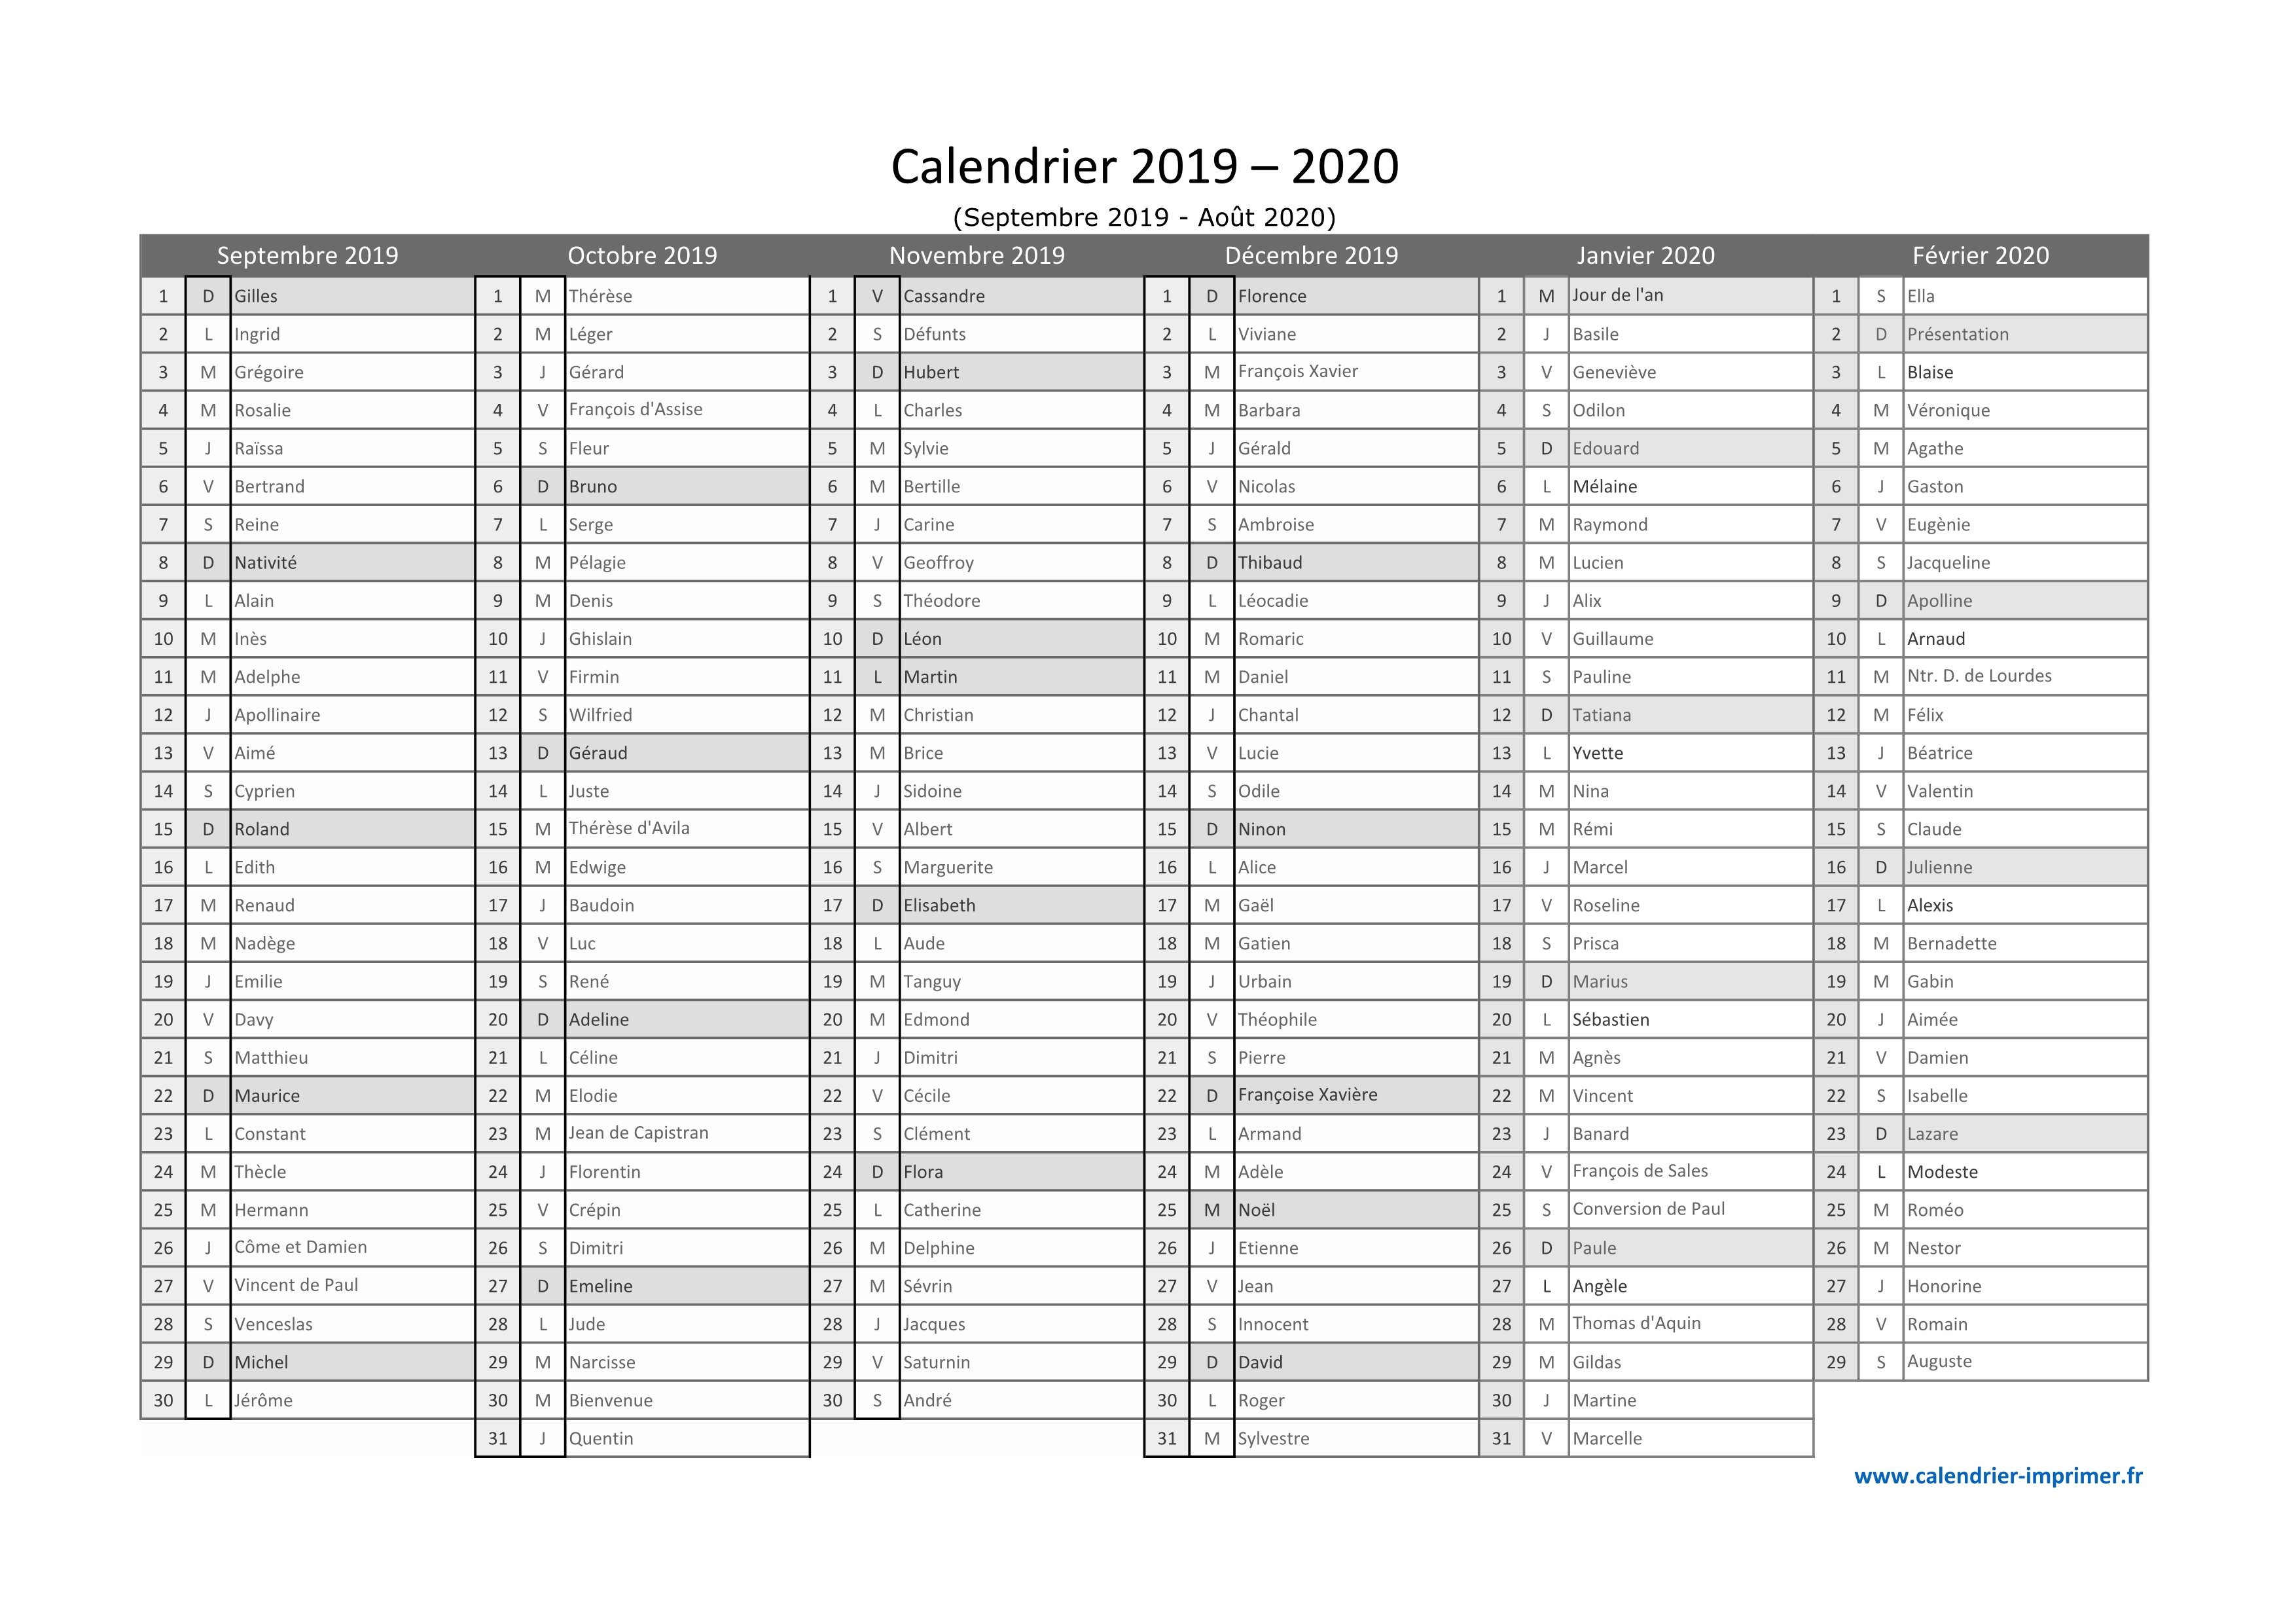 Calendrier 2020 Excell.Calendrier 2019 2020 A Imprimer